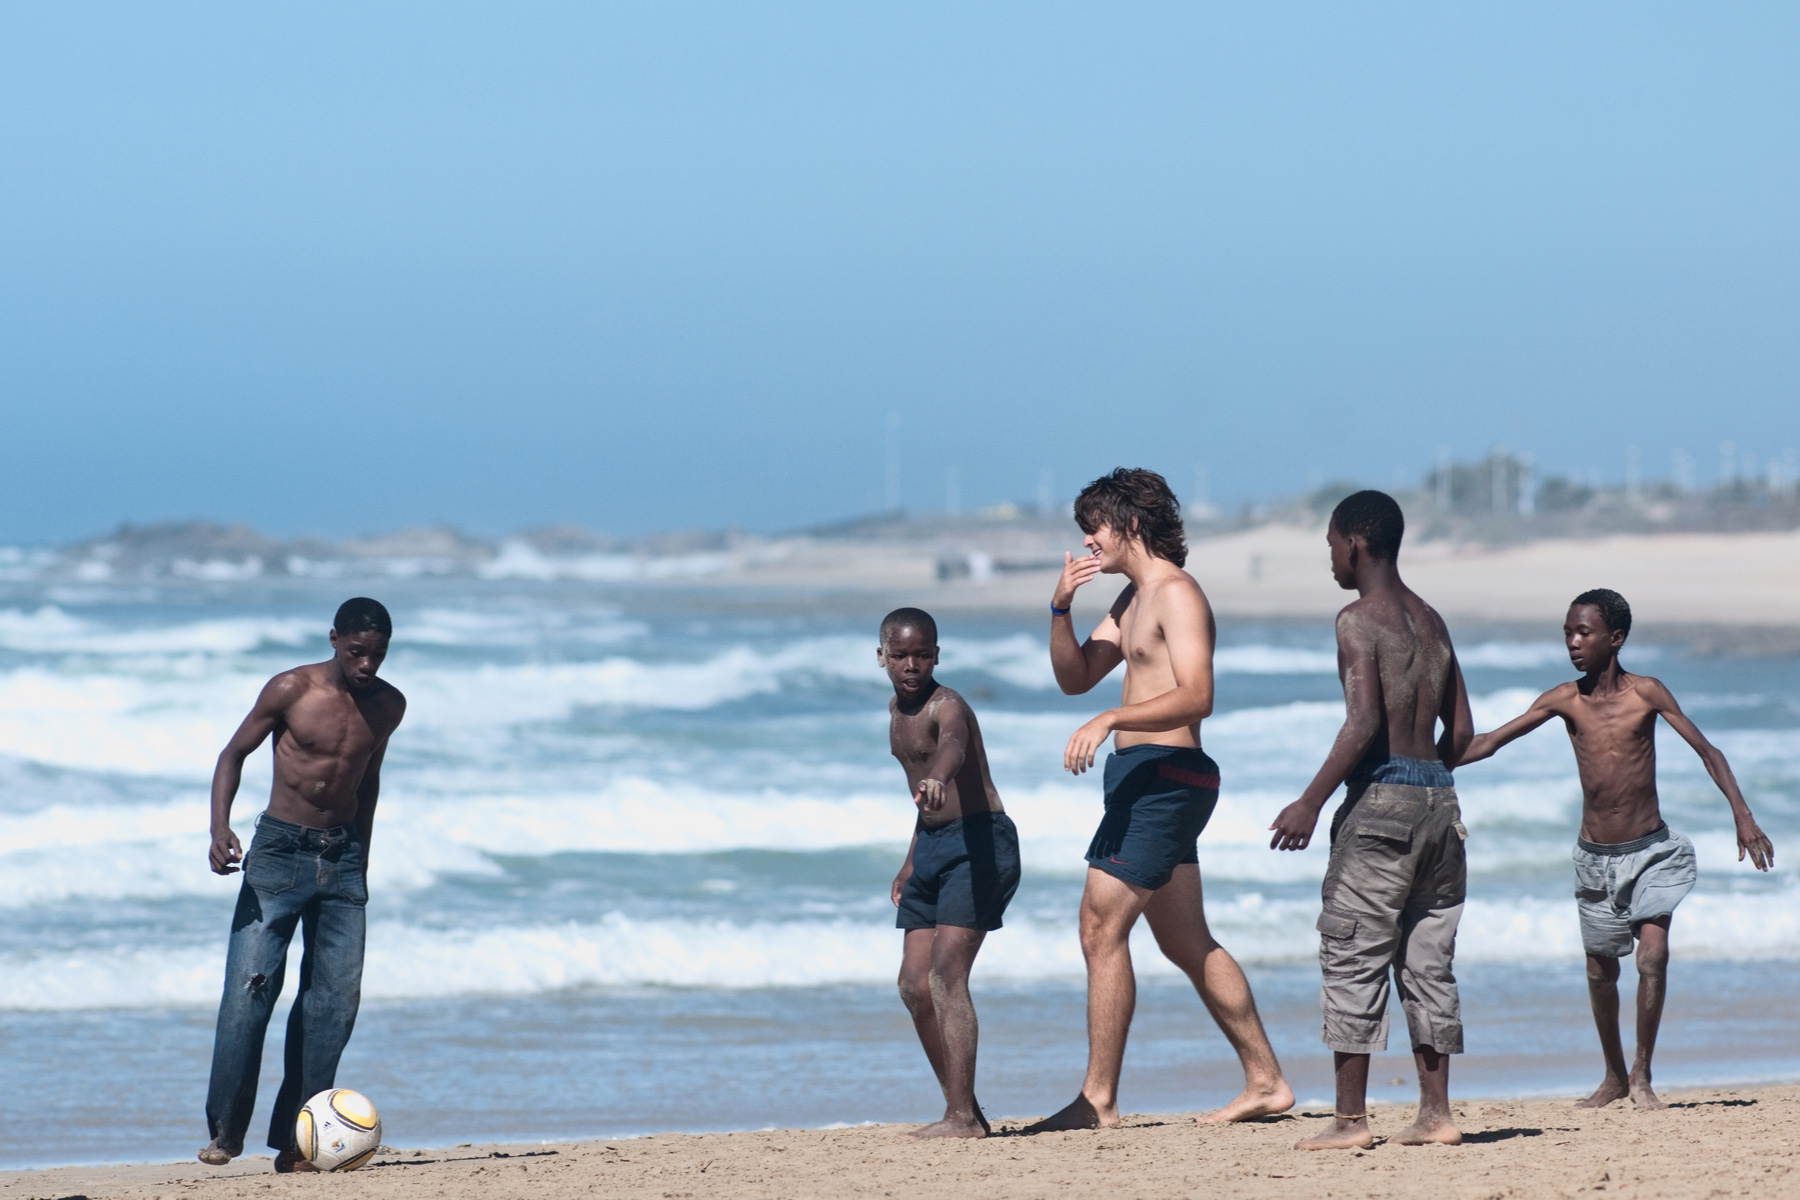 Playing football on the beach in South Africa